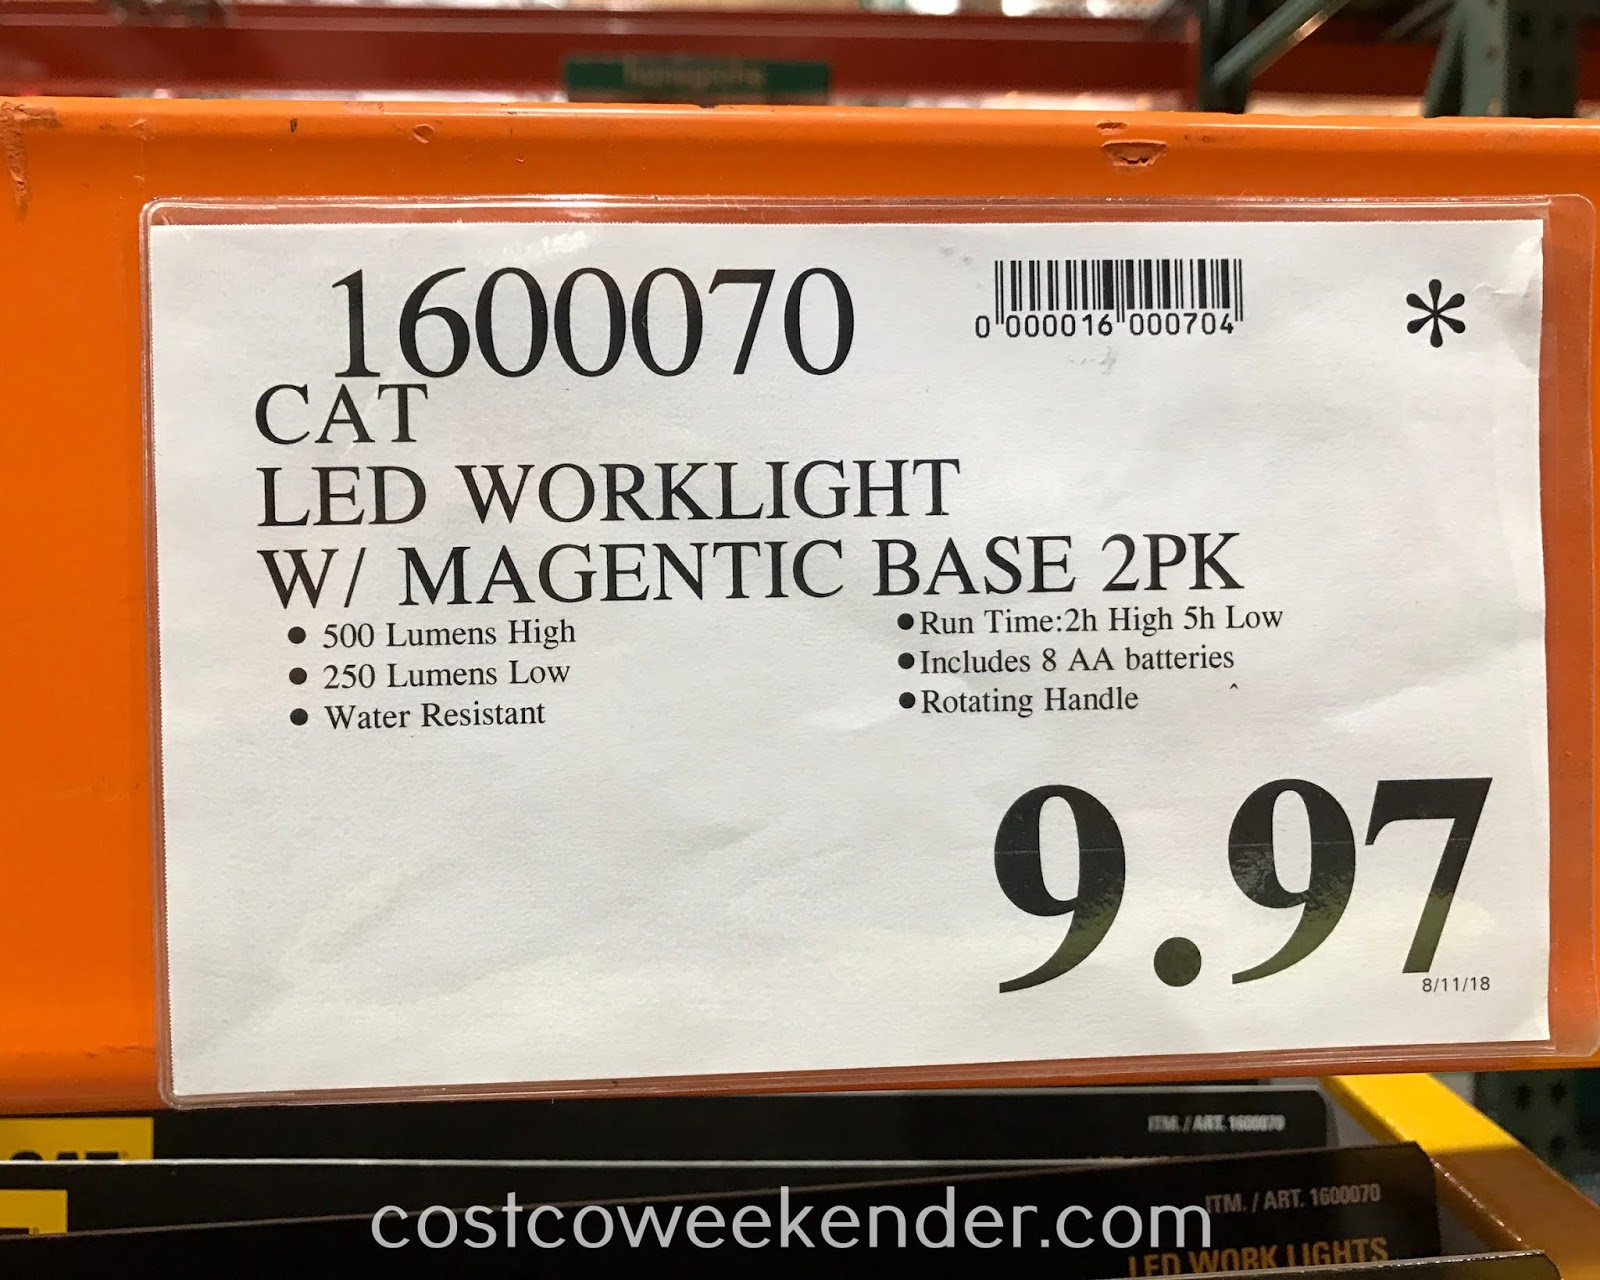 Deal for a 2 pack of Cat LED Work Lights at Costco